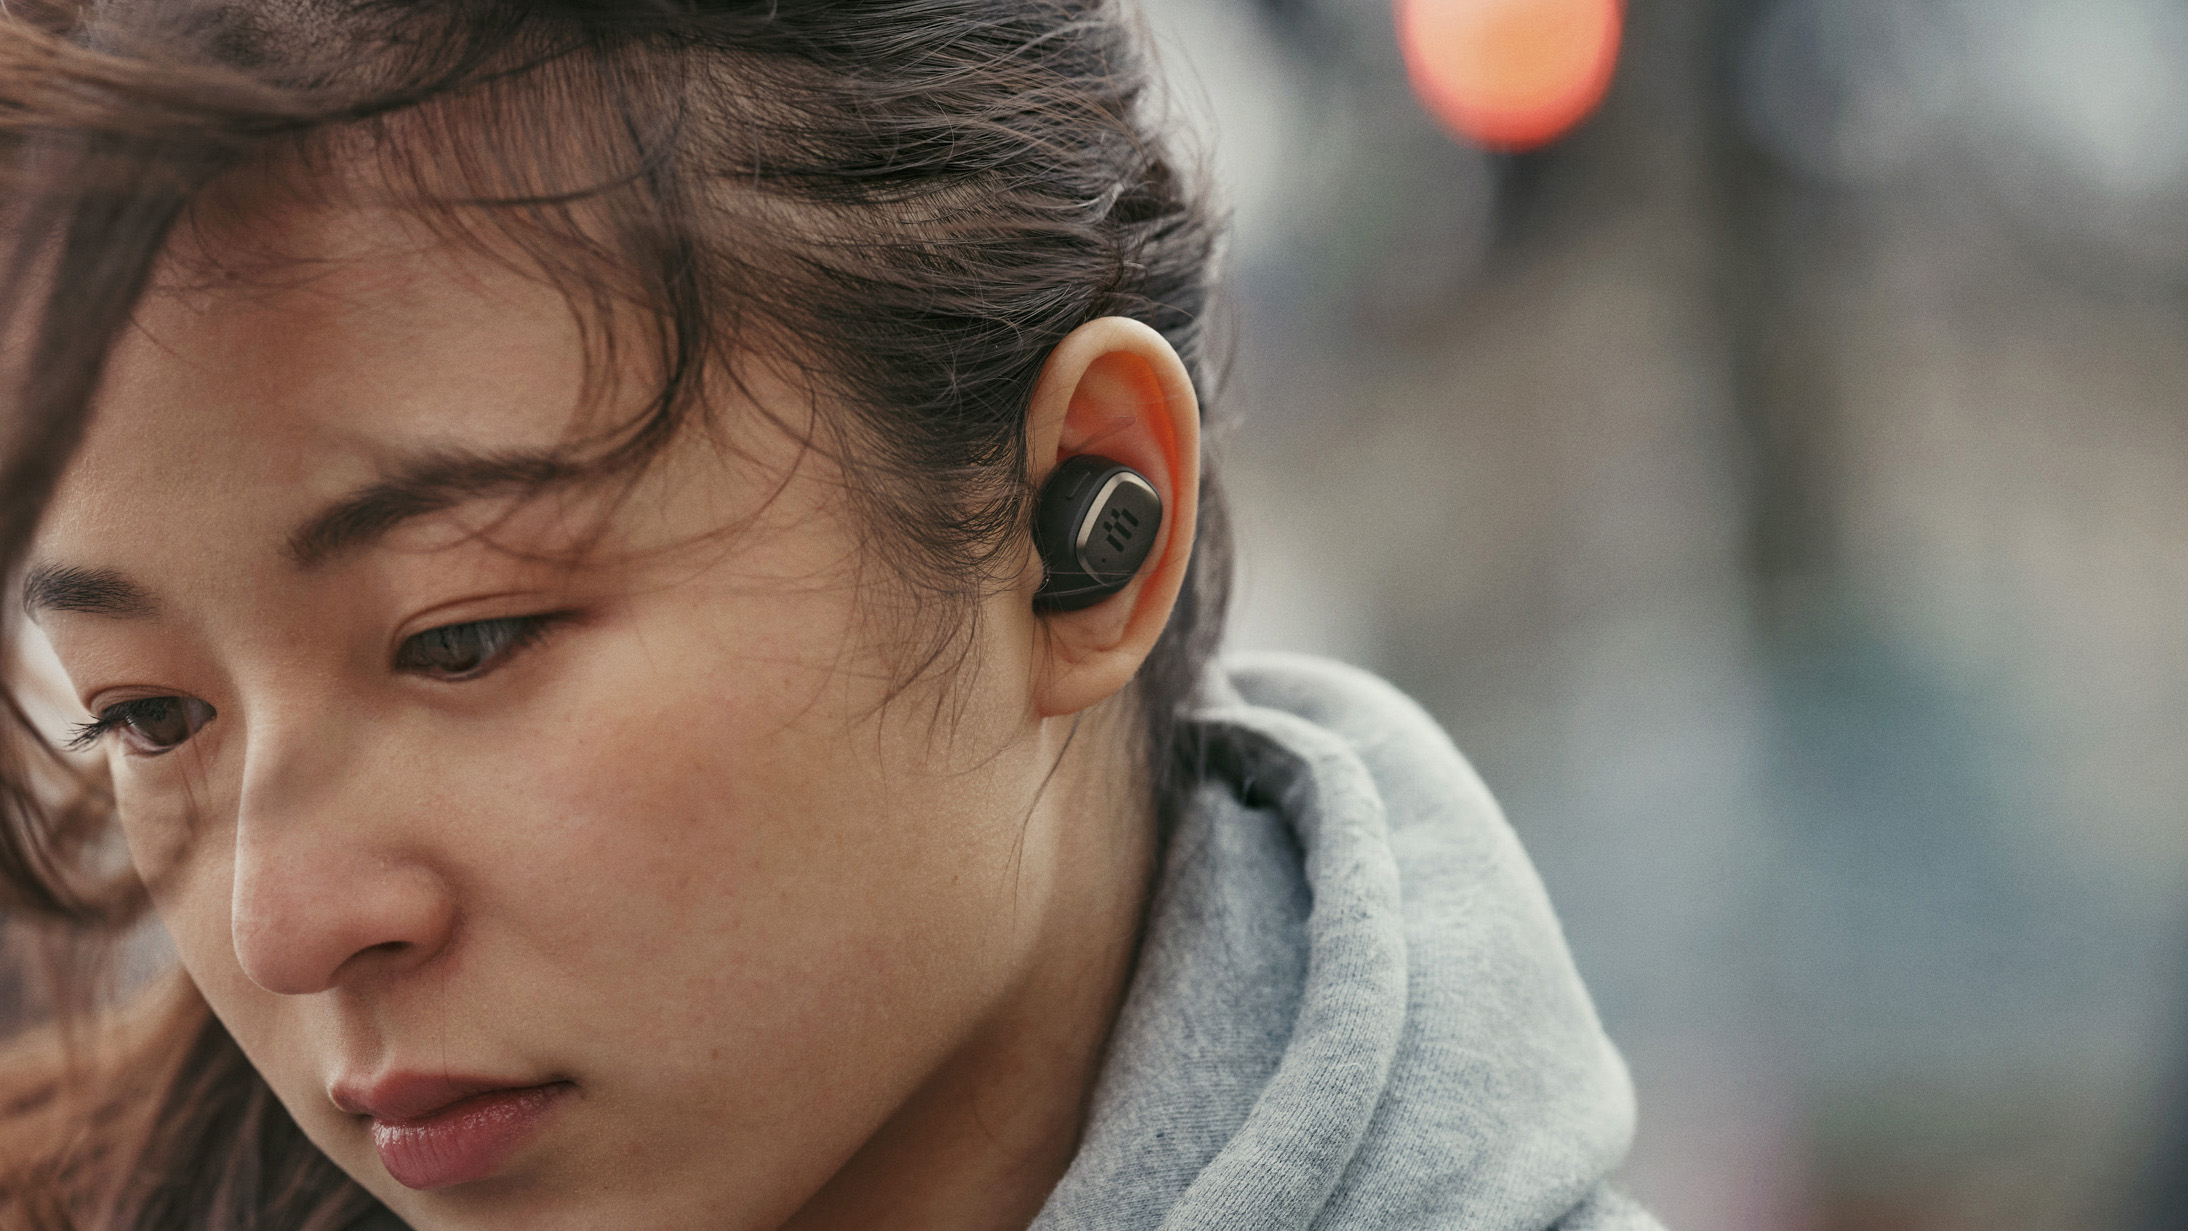 These wireless earbuds let you game across PC, laptop, or Nintendo Switch